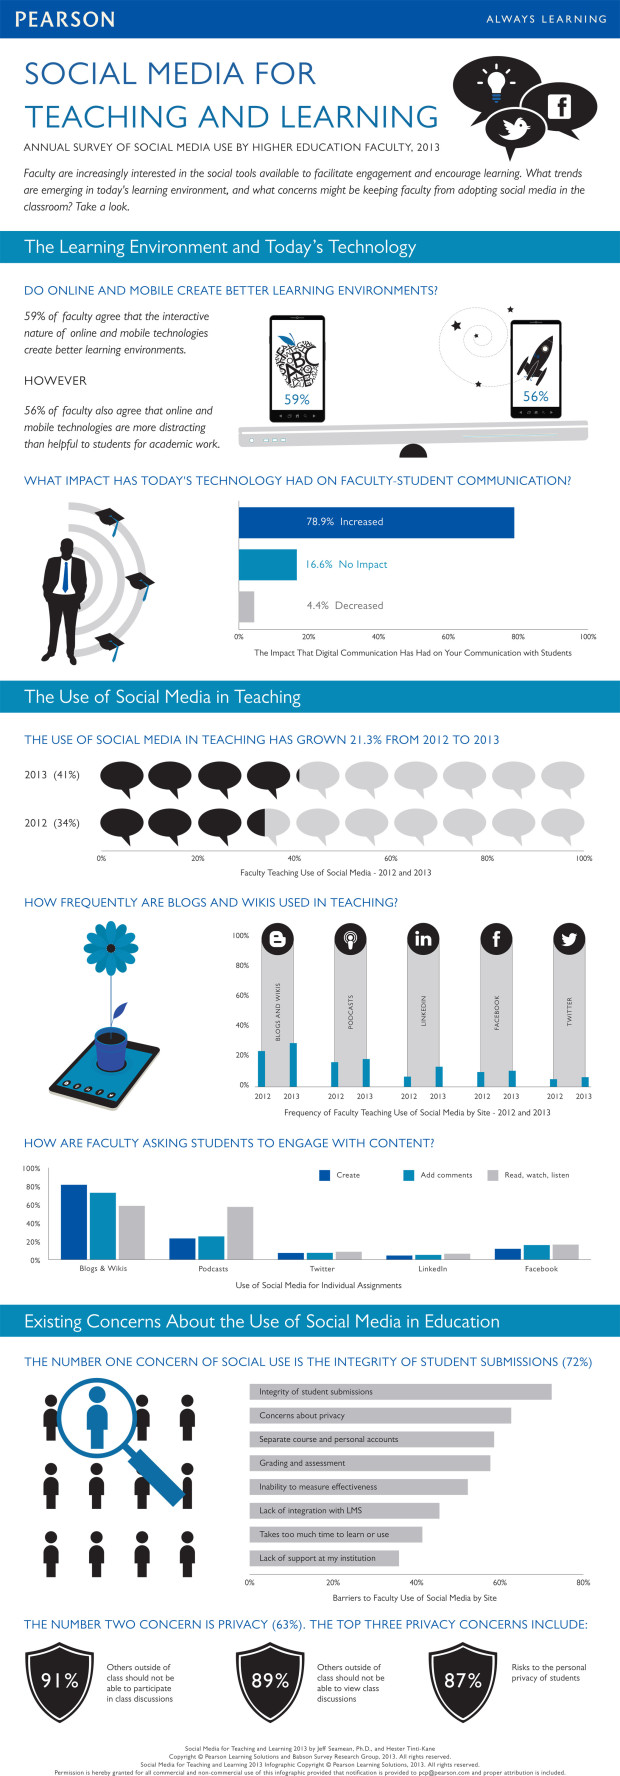 social-media-for-teaching-and-learning-2013-infographic